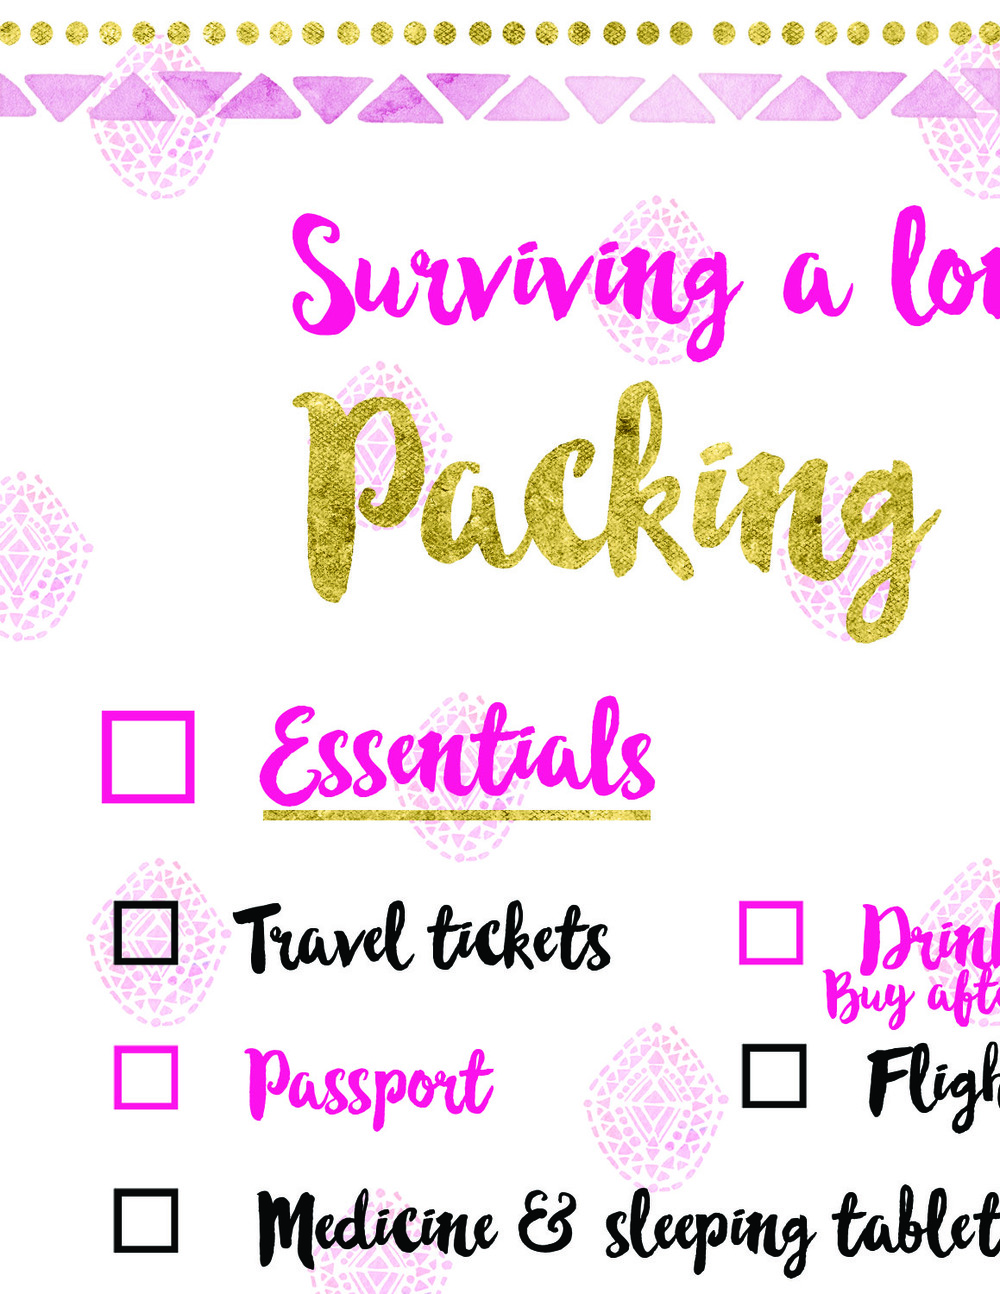 A sneak peek of your free printable packing checklist....